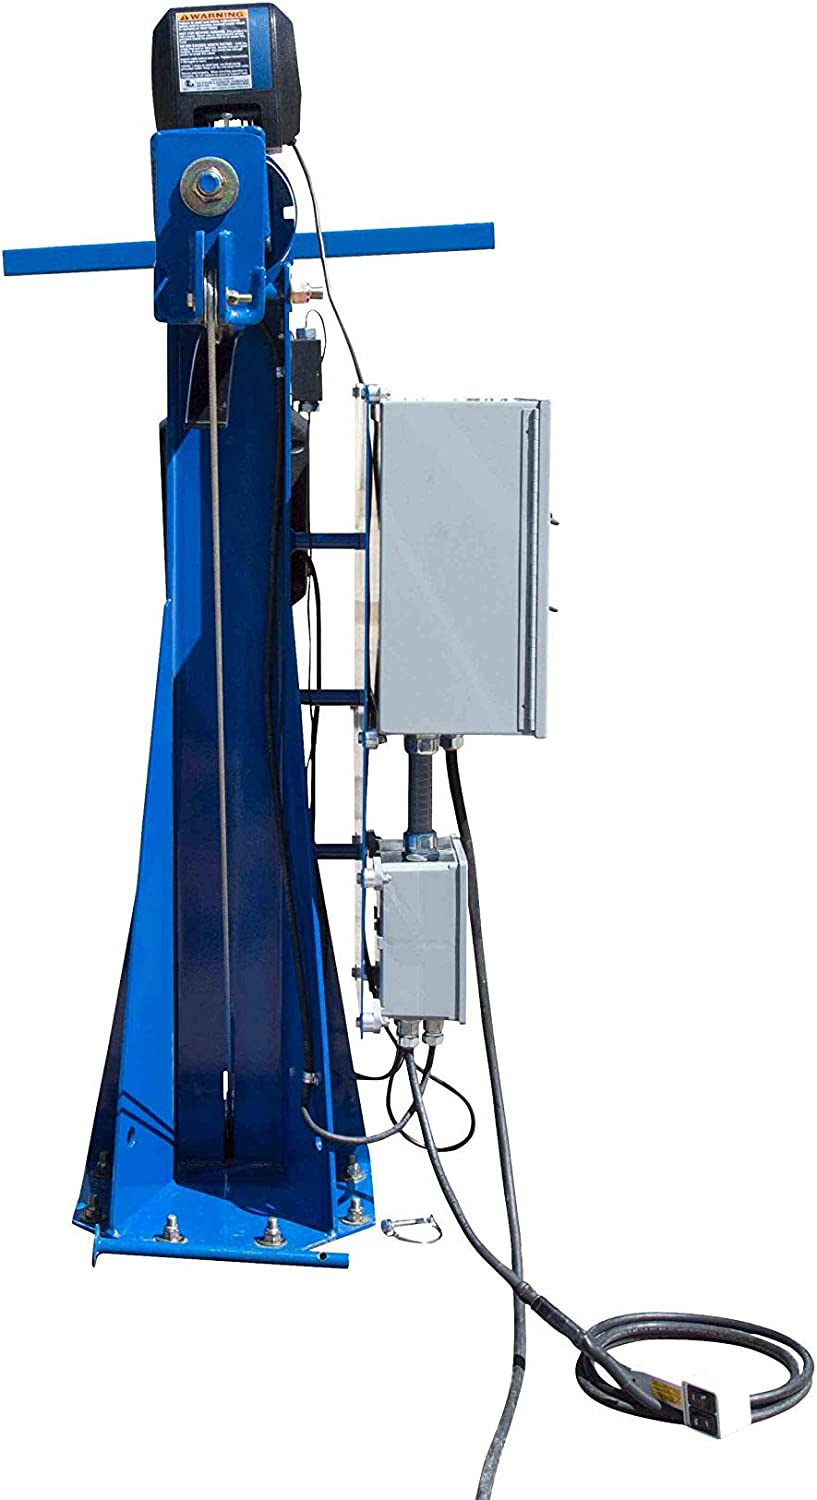 Fold Over Light Boom 3 Stage Tower 30ft Light Mast w//Electric Winch Operation Low Voltage